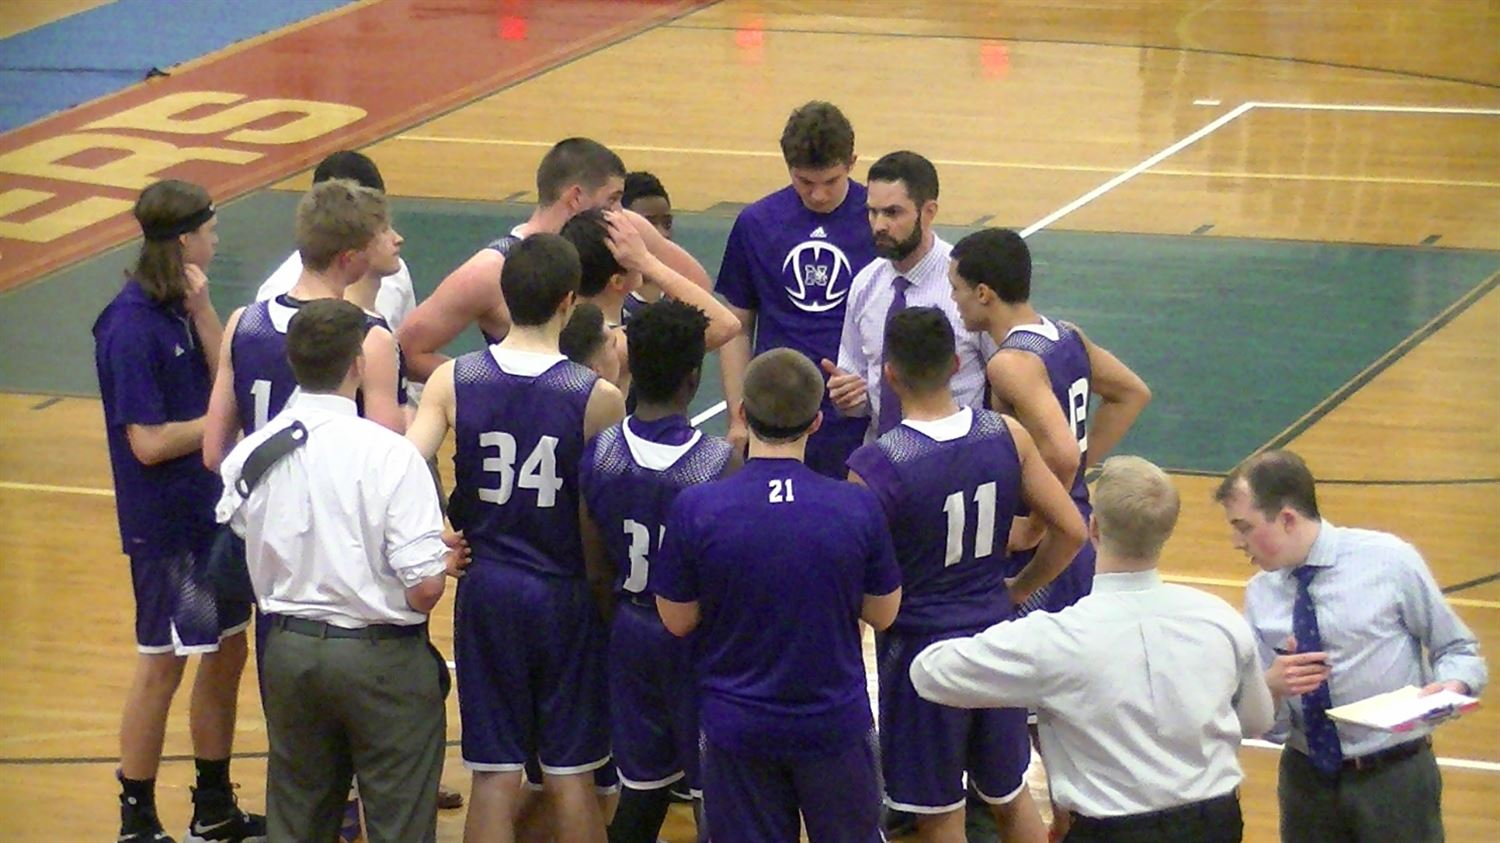 Nashua High School South - Boys' Varsity Basketball